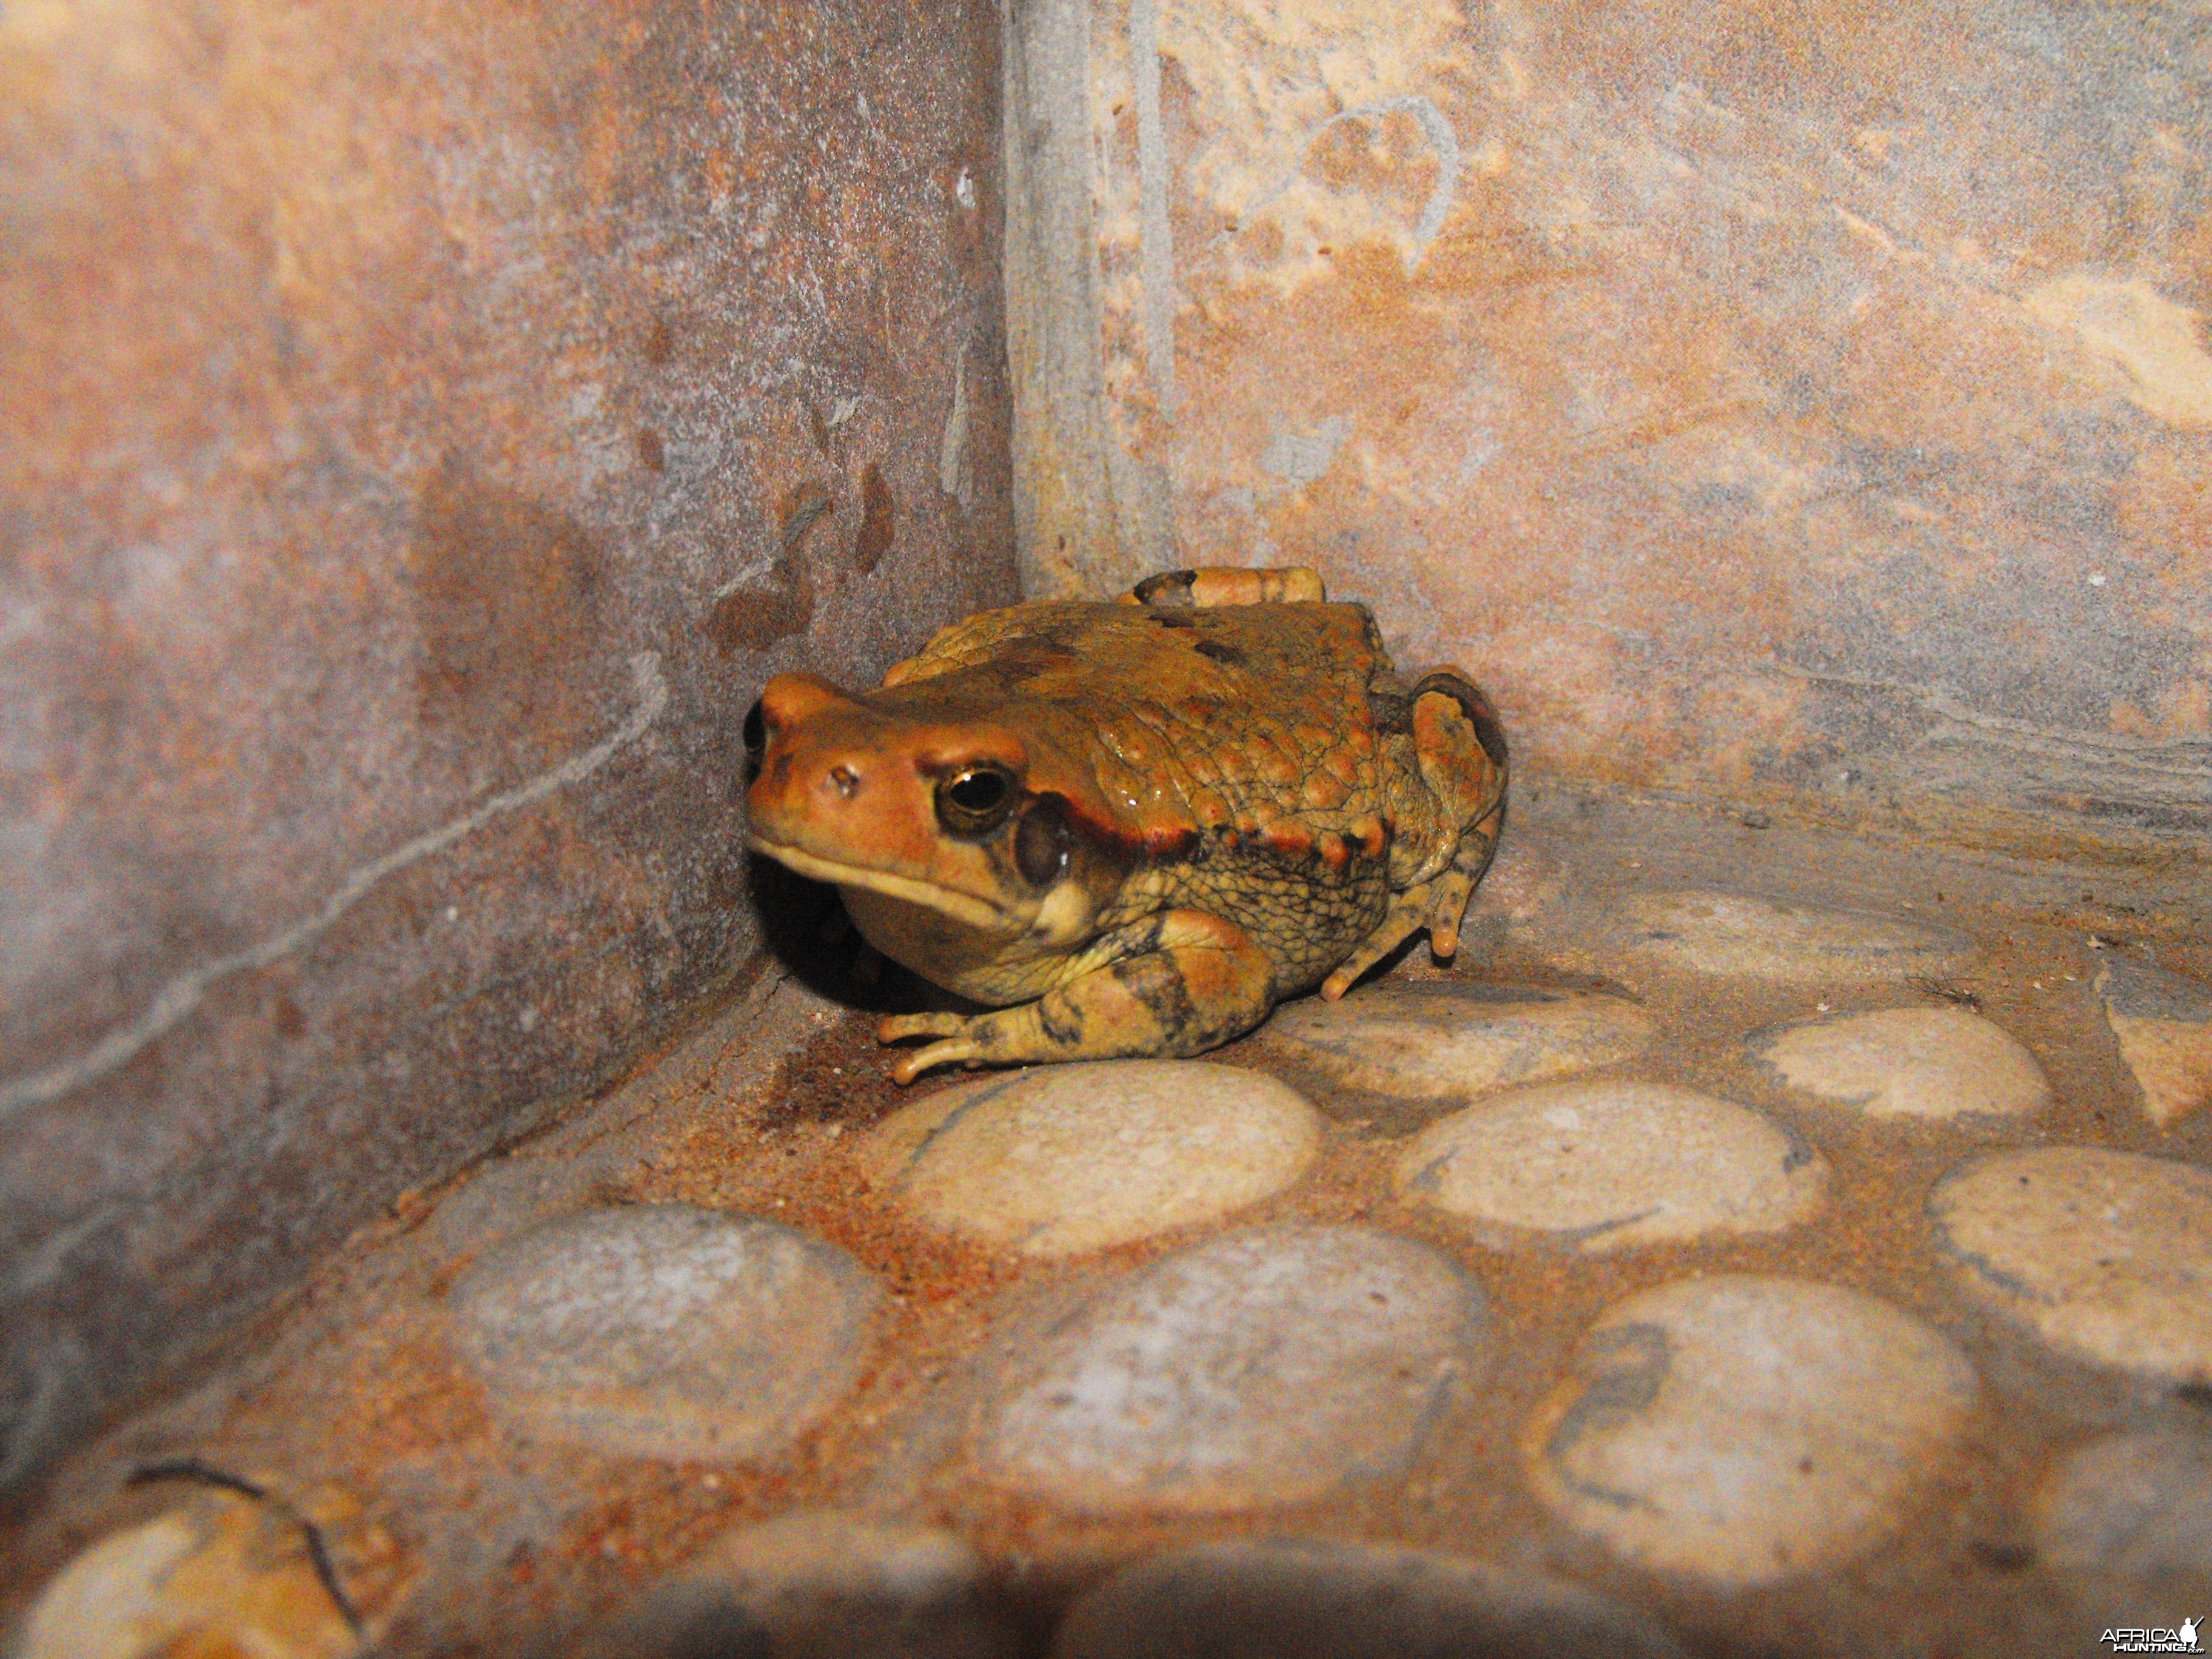 Cute little, yet welcomed toad that subbornly kept ending up in our shower.